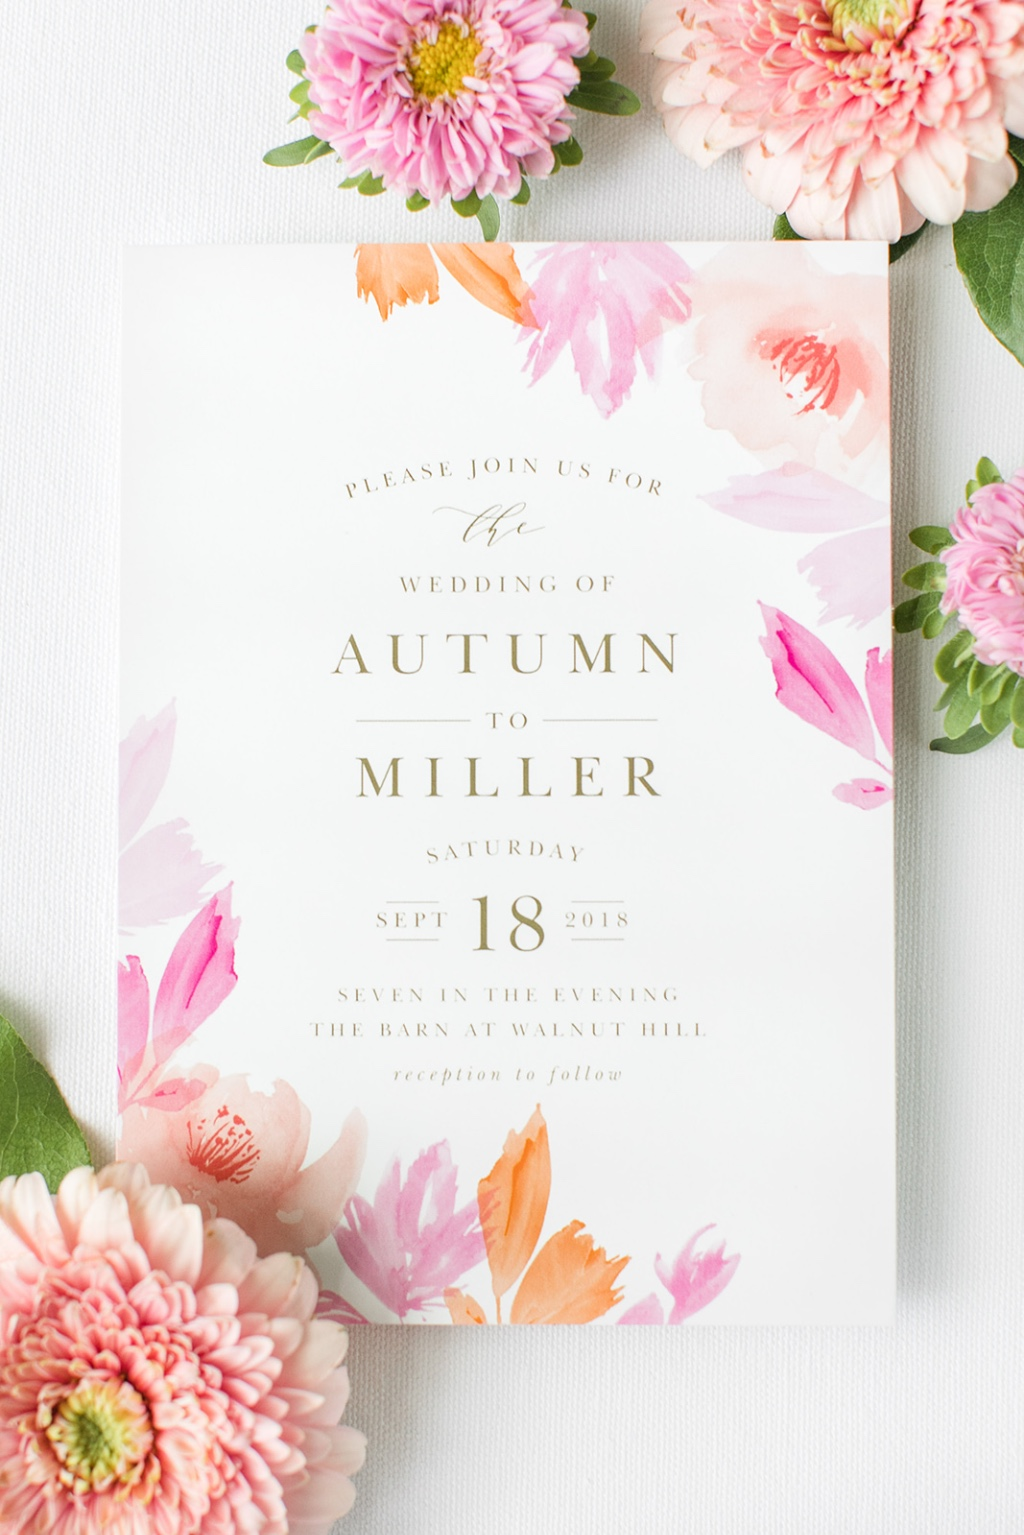 Leafy autumn wedding invitations available in 180 colors! Upload your color scheme for a truly custom design!